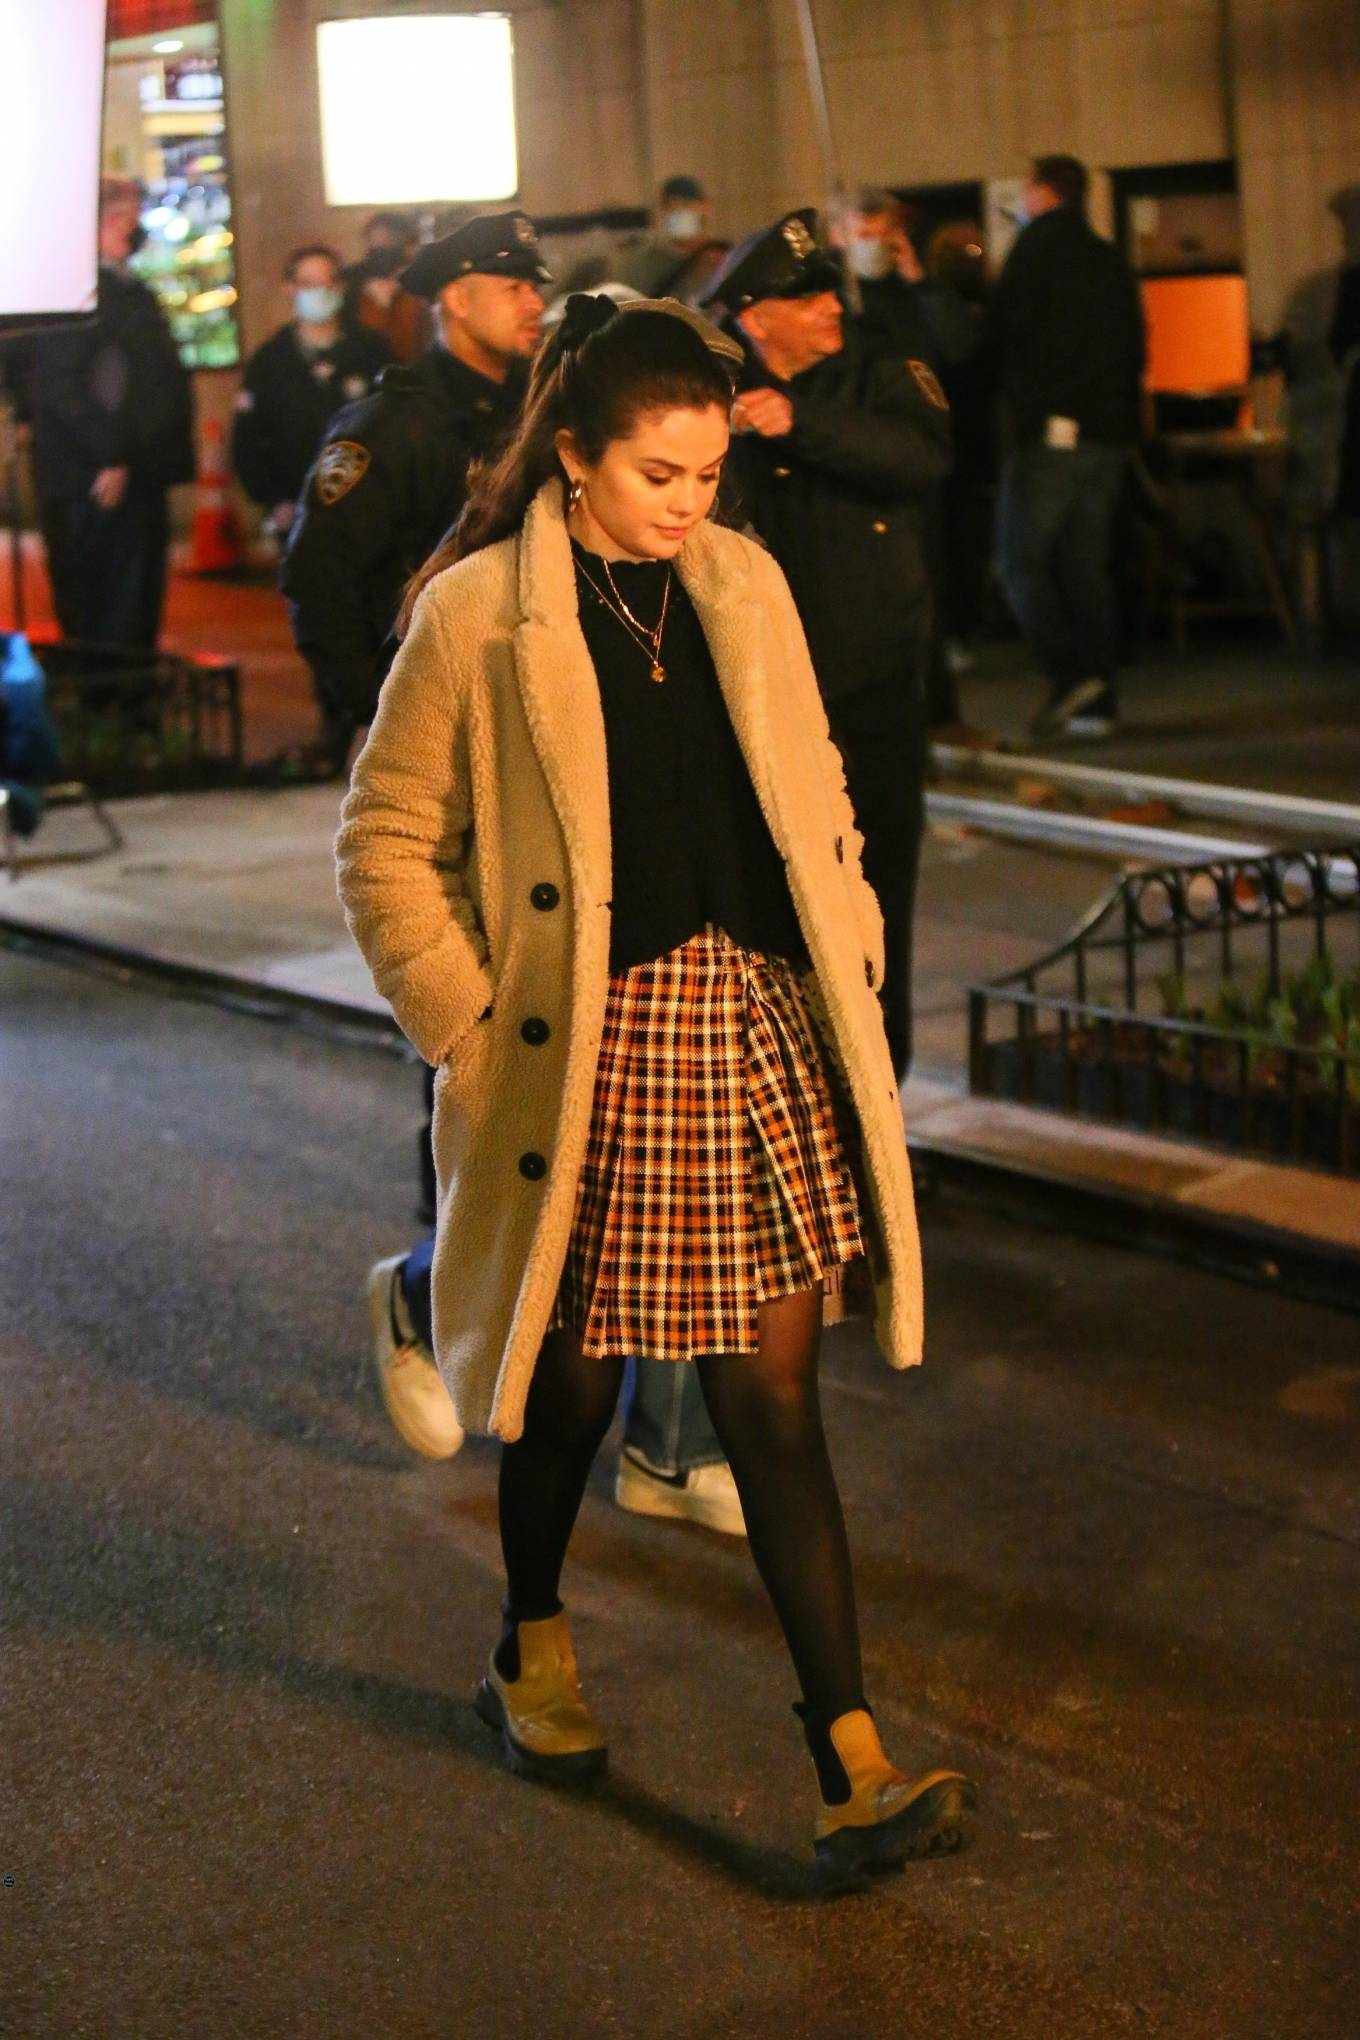 Selena Gomez rocking a oversized beige button front overcoat with a fleece fabric, full sleeves, lapel collar and side pockets